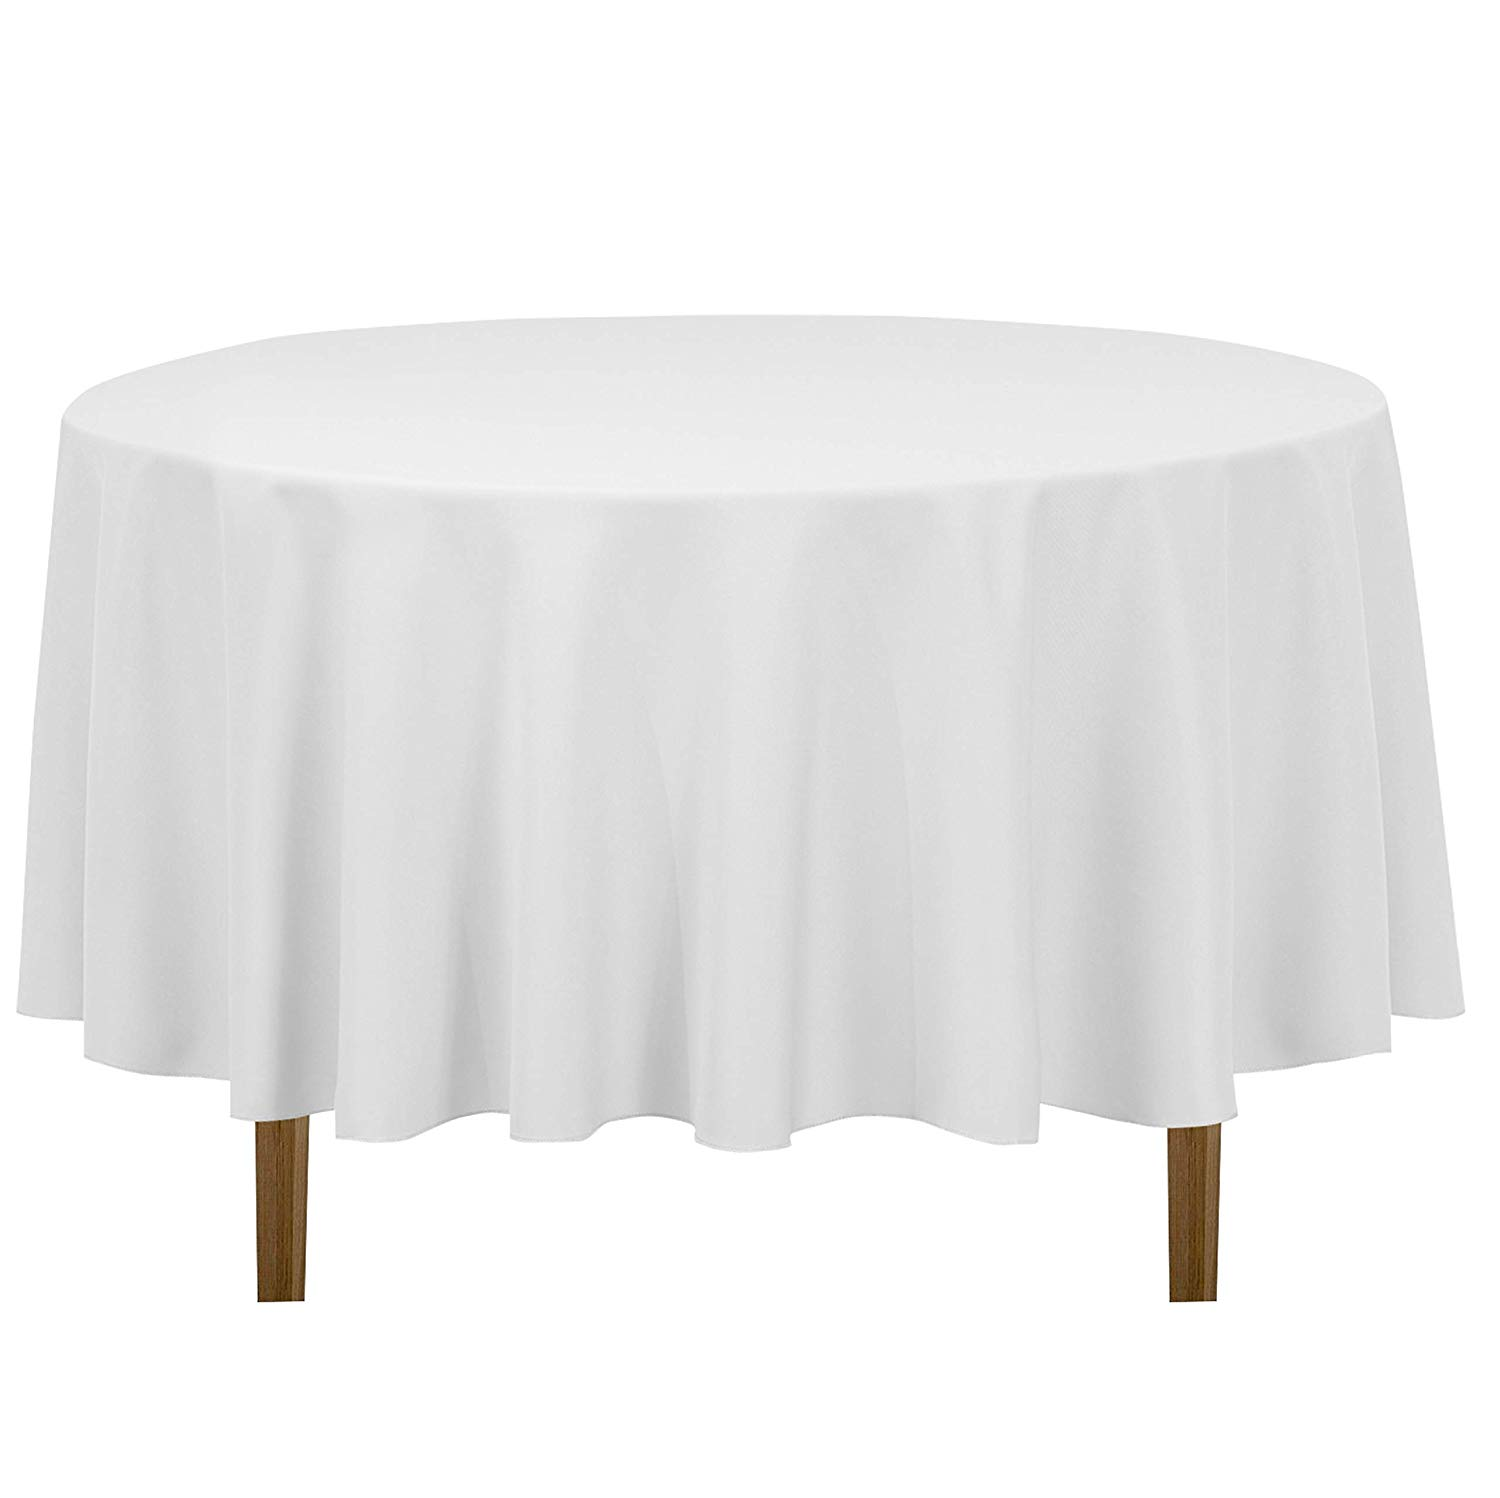 linentablecloth inch round polyester tablecloth for accent table white home kitchen target vases best furniture small chest drawers wood and metal side folding lawn chairs with